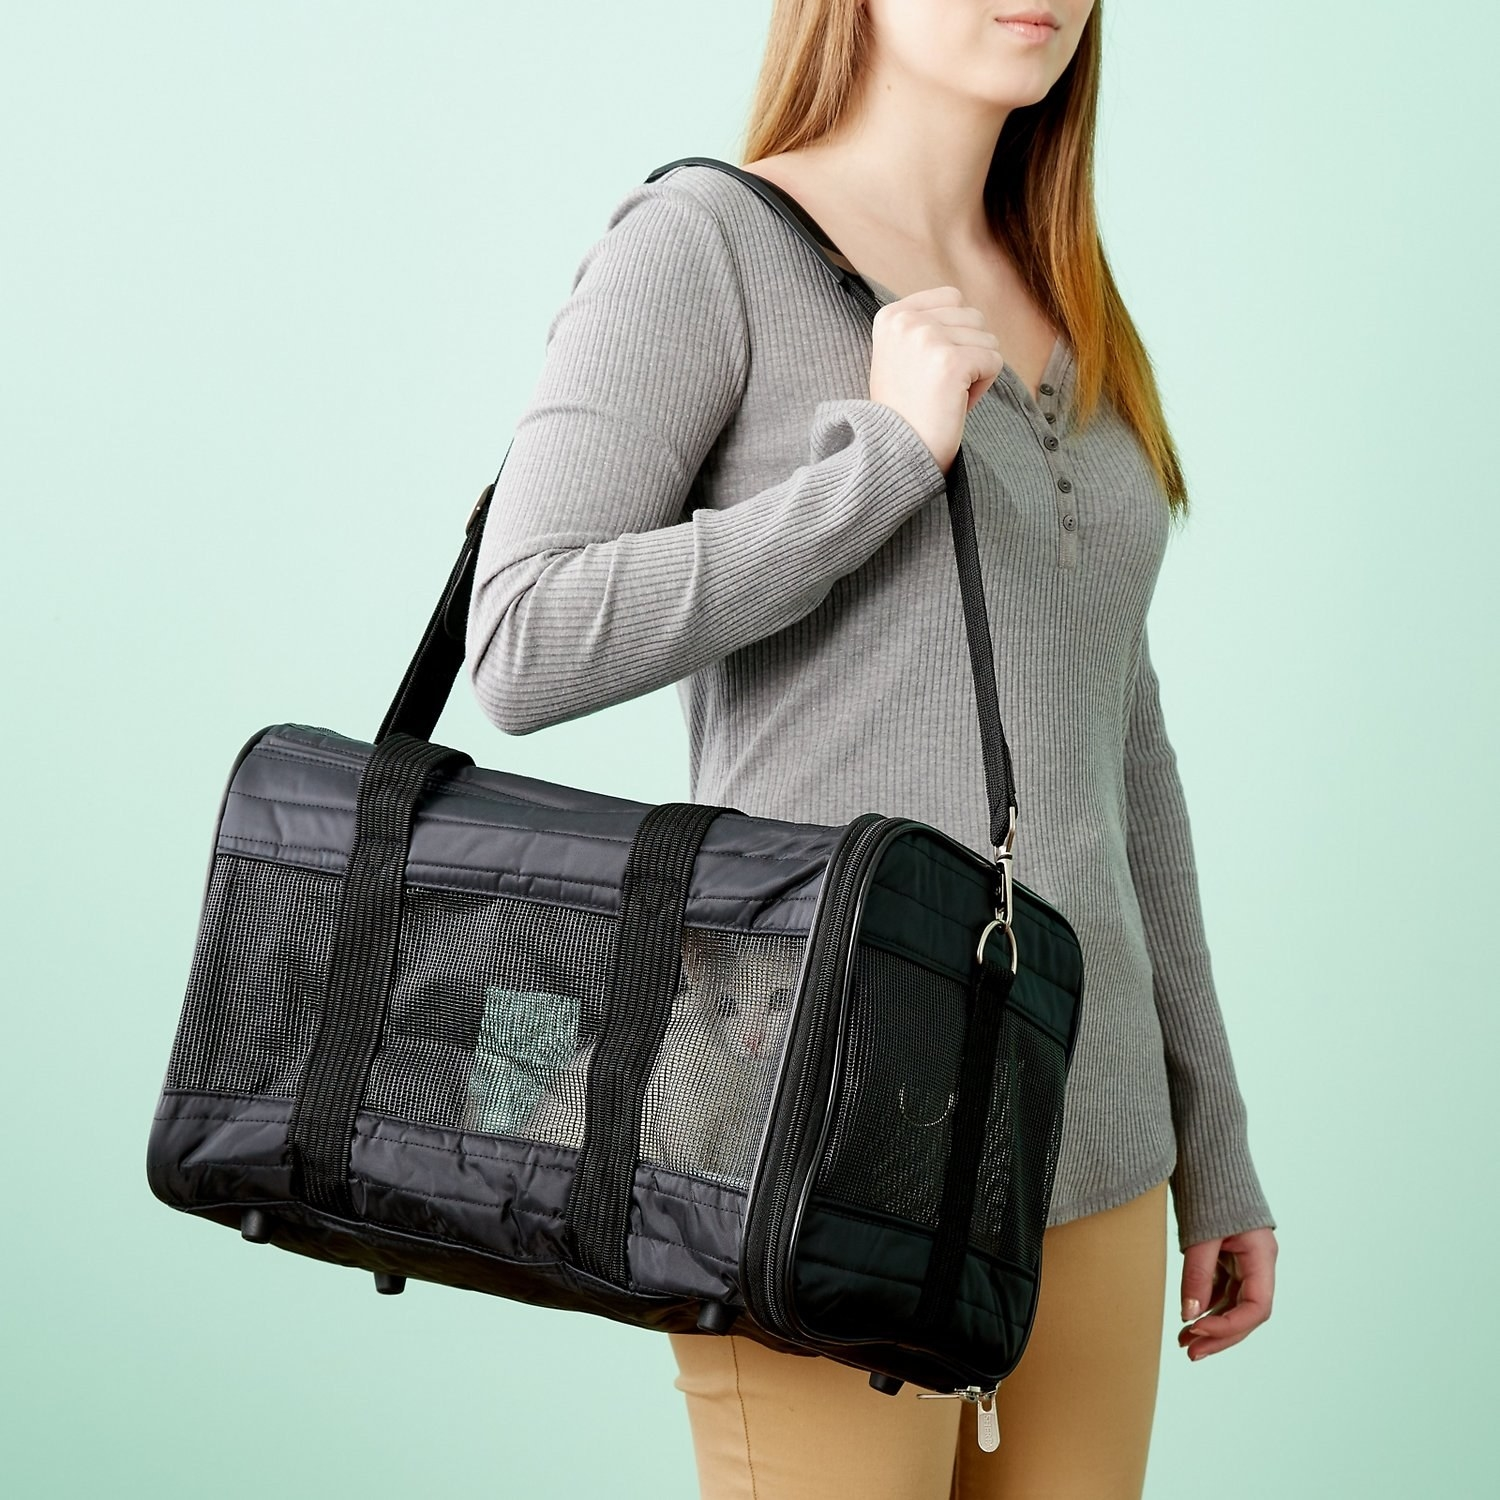 A person carrying the carrier, with a cat inside